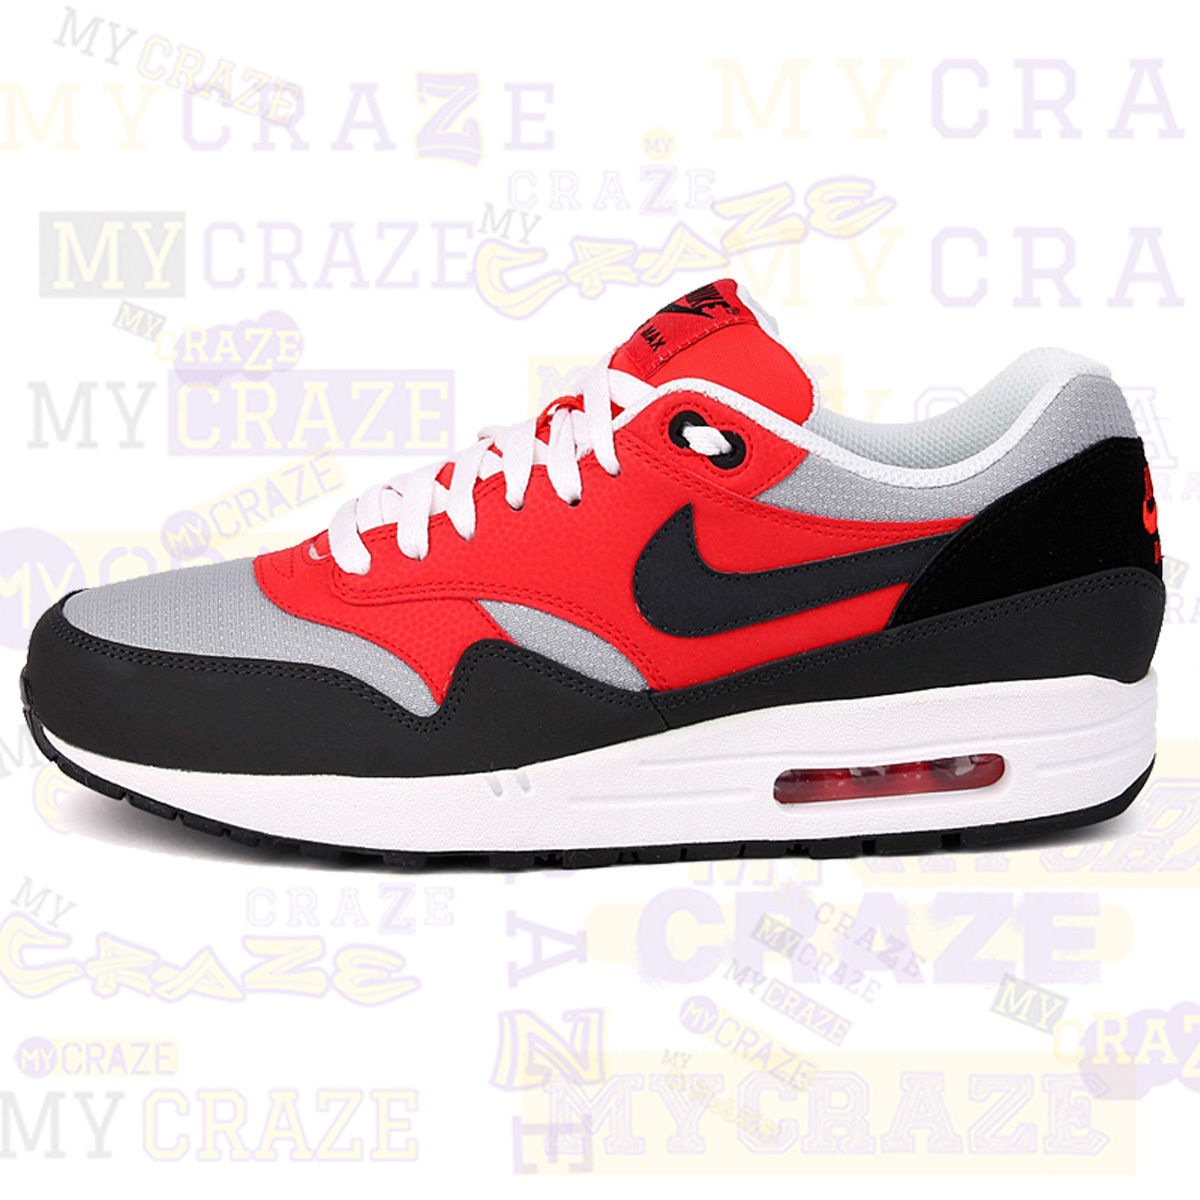 Nike Air Max 1 Essential Red Black Mens Sneakers Shoes - MyCraze 0ded09023a